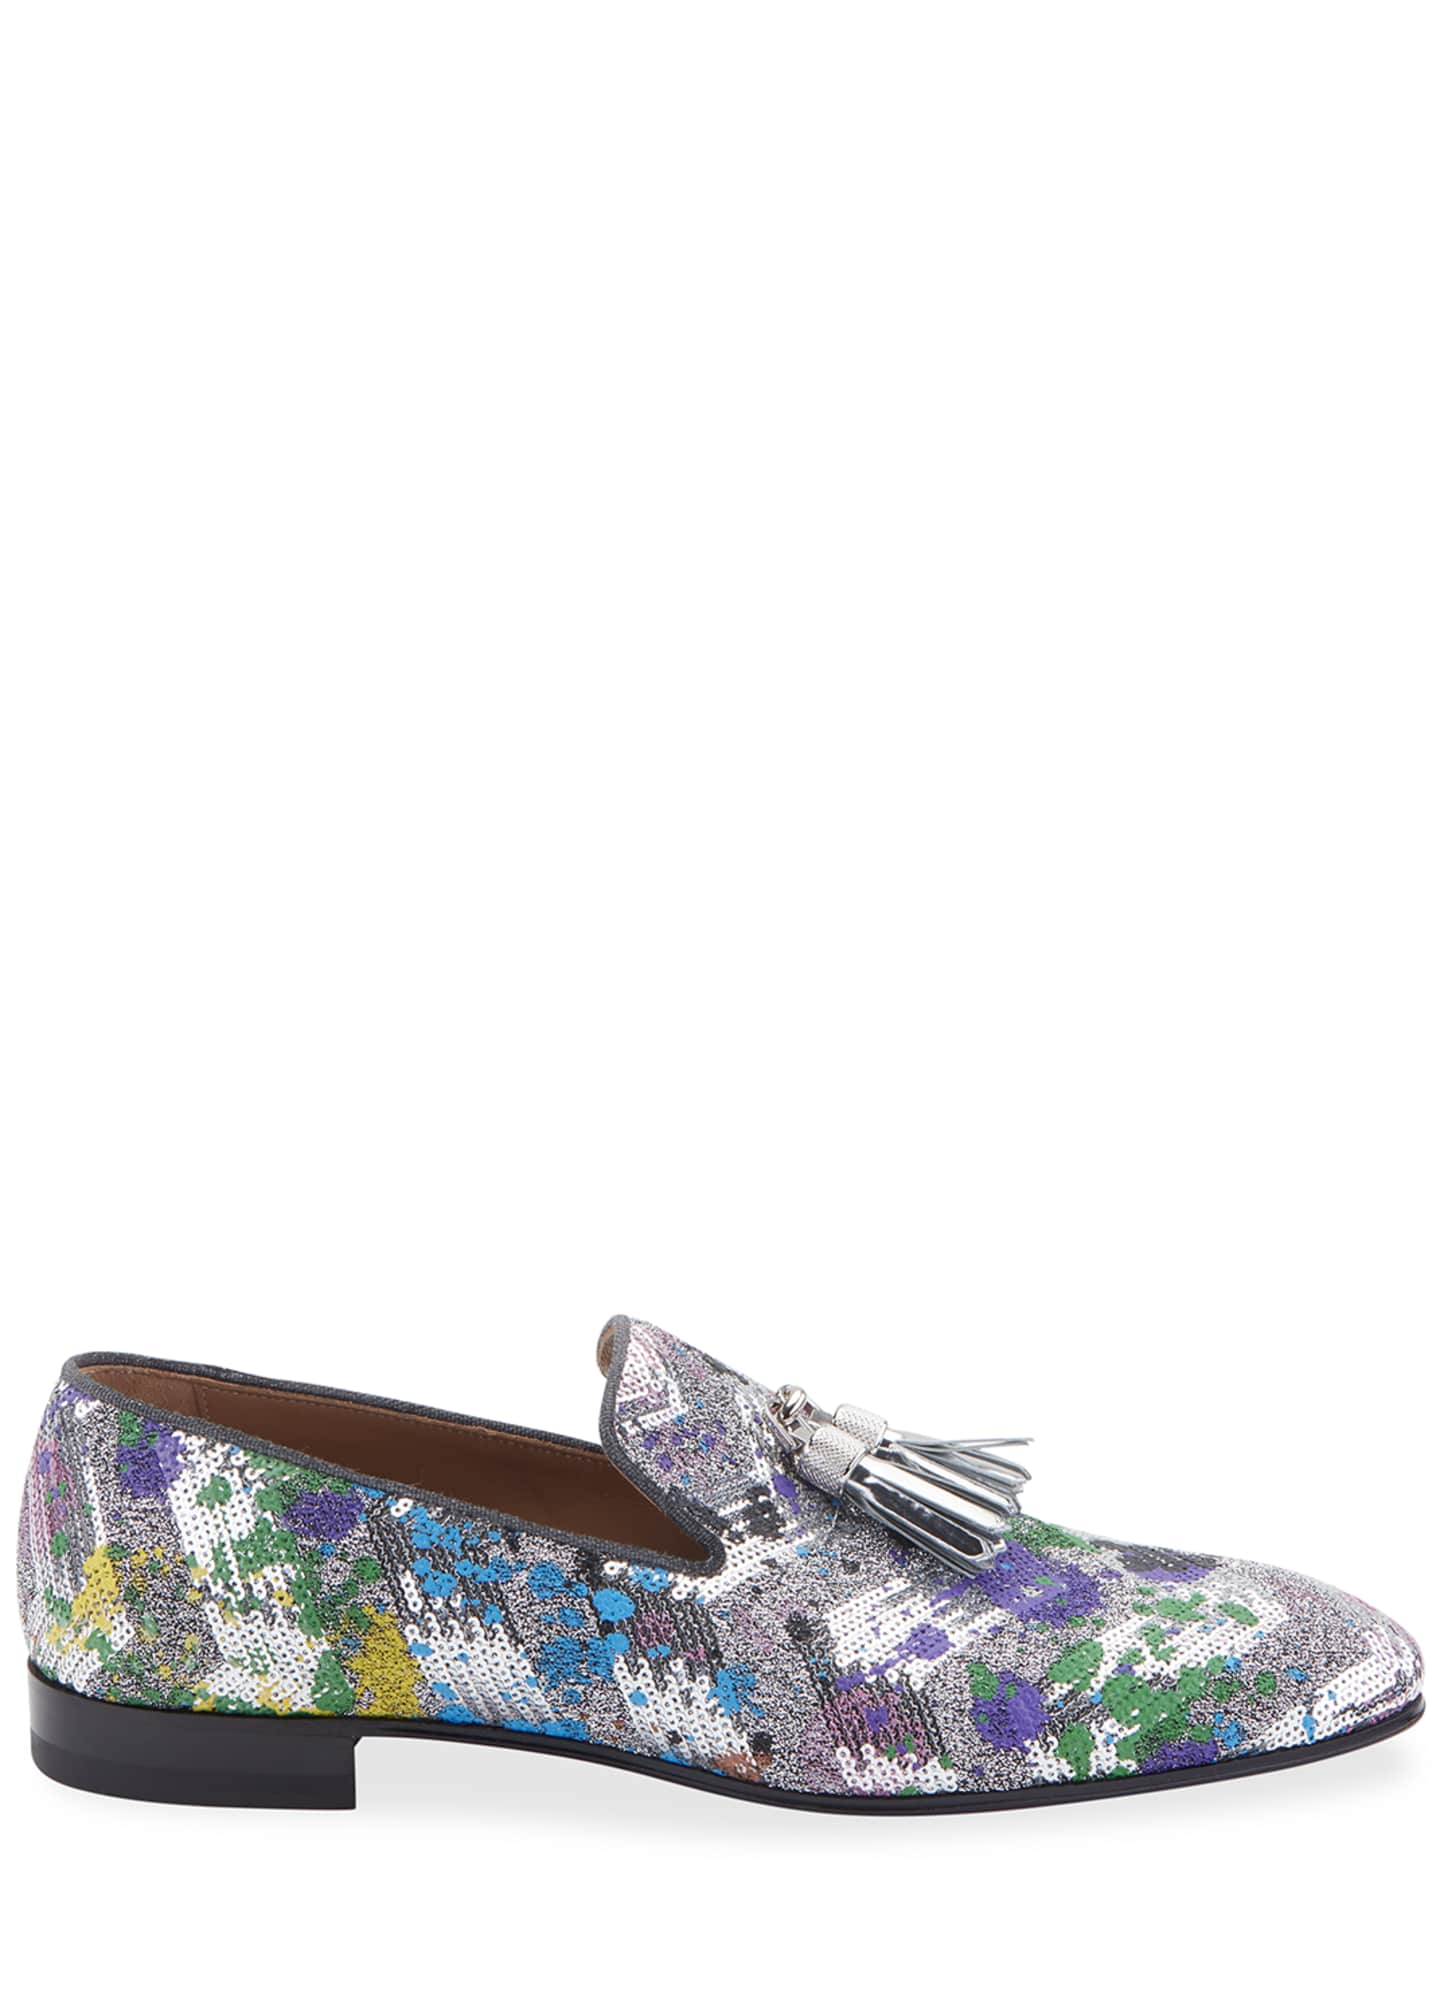 Image 2 of 2: Men's Rivalion Graphic Sequined Tassel Loafers